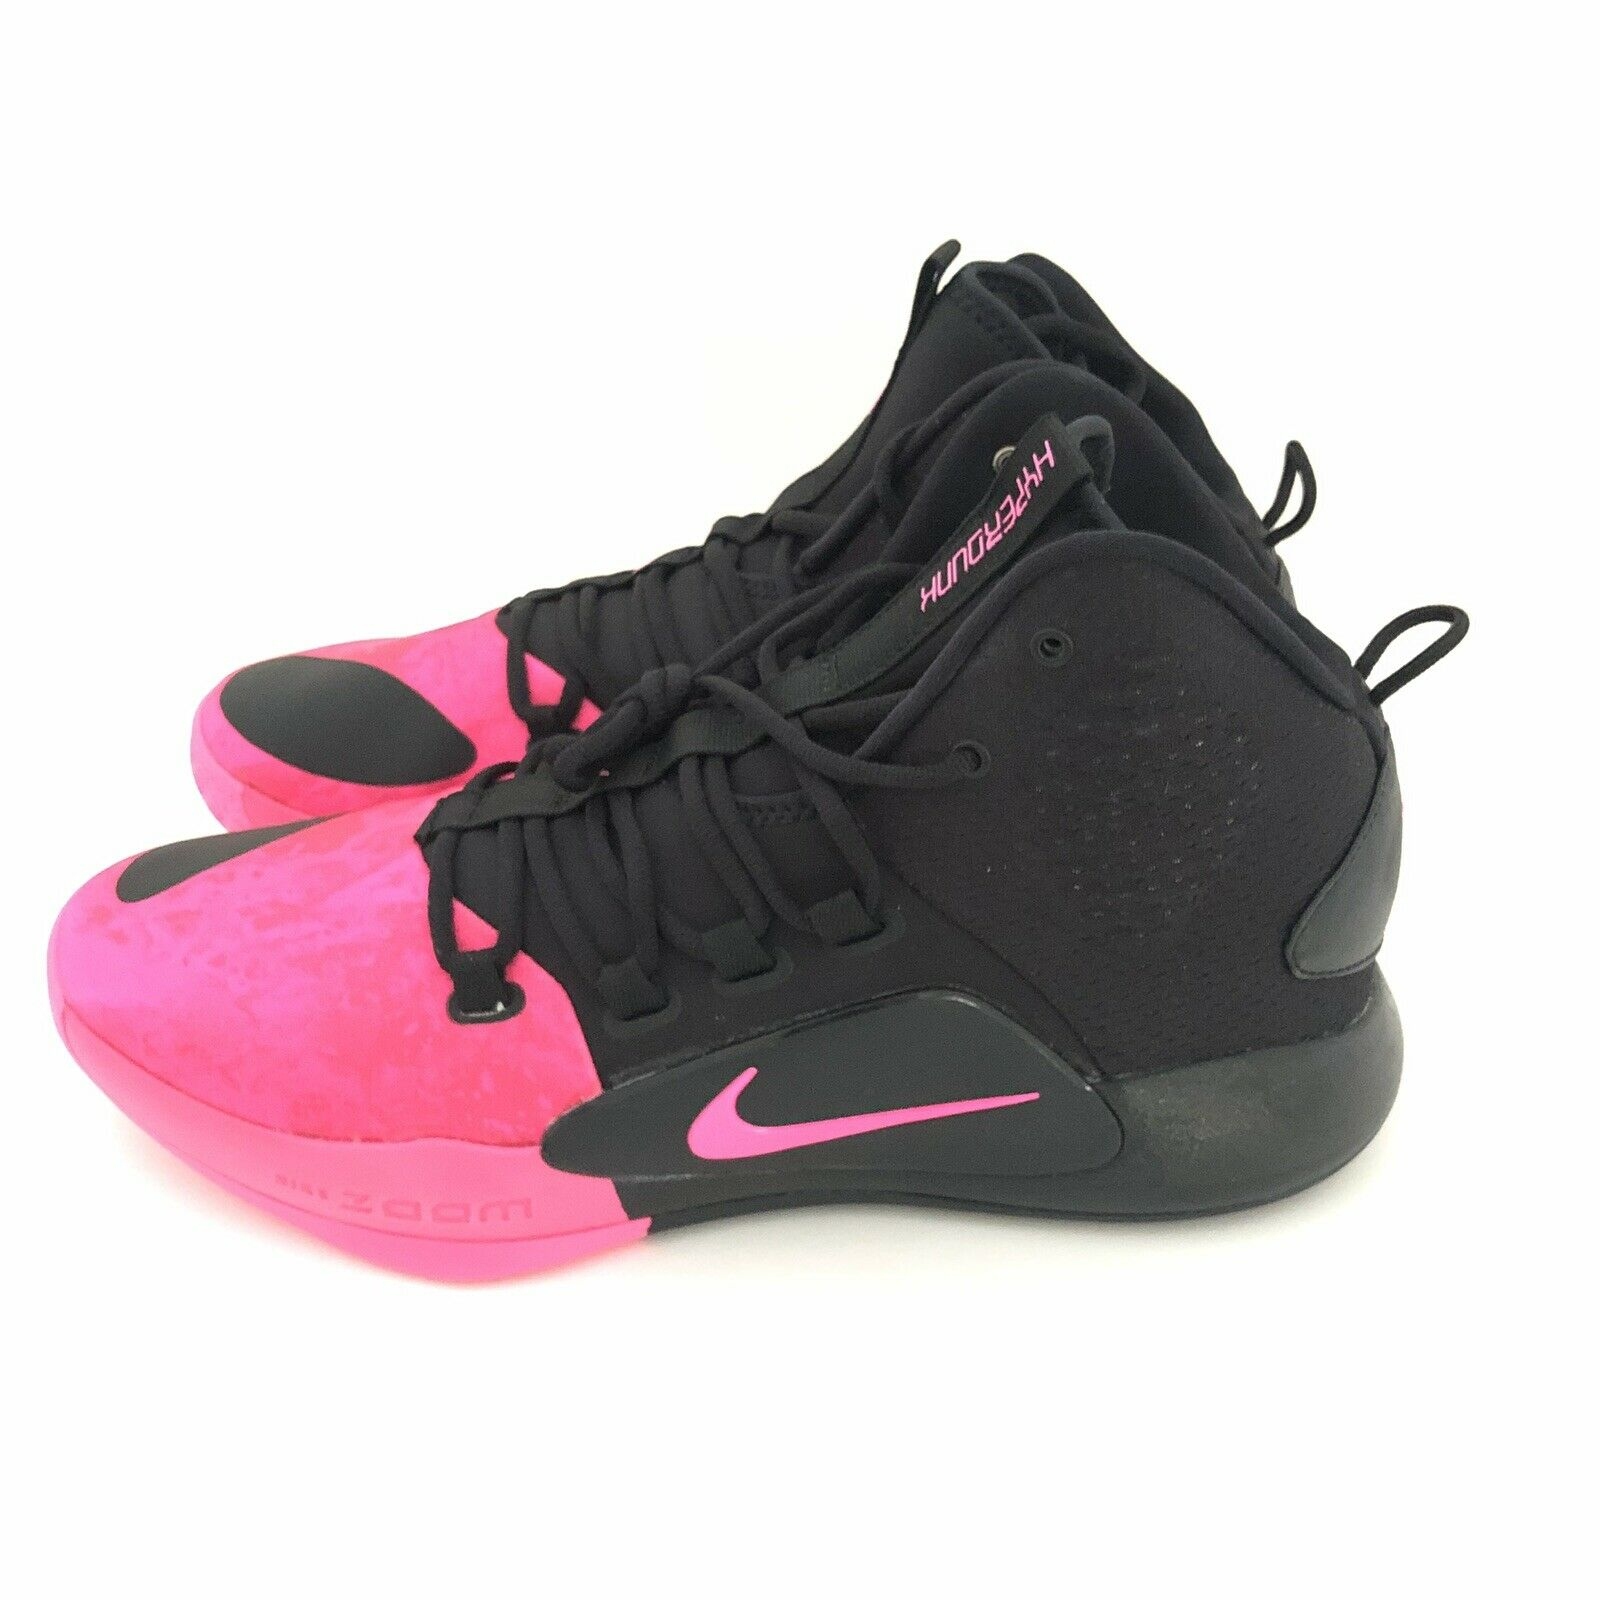 new product 459e4 05b44 Nike Nike Nike Hyperdunk X Kay Yow Breast Cancer Awareness Mens Size 11  AT3663-001